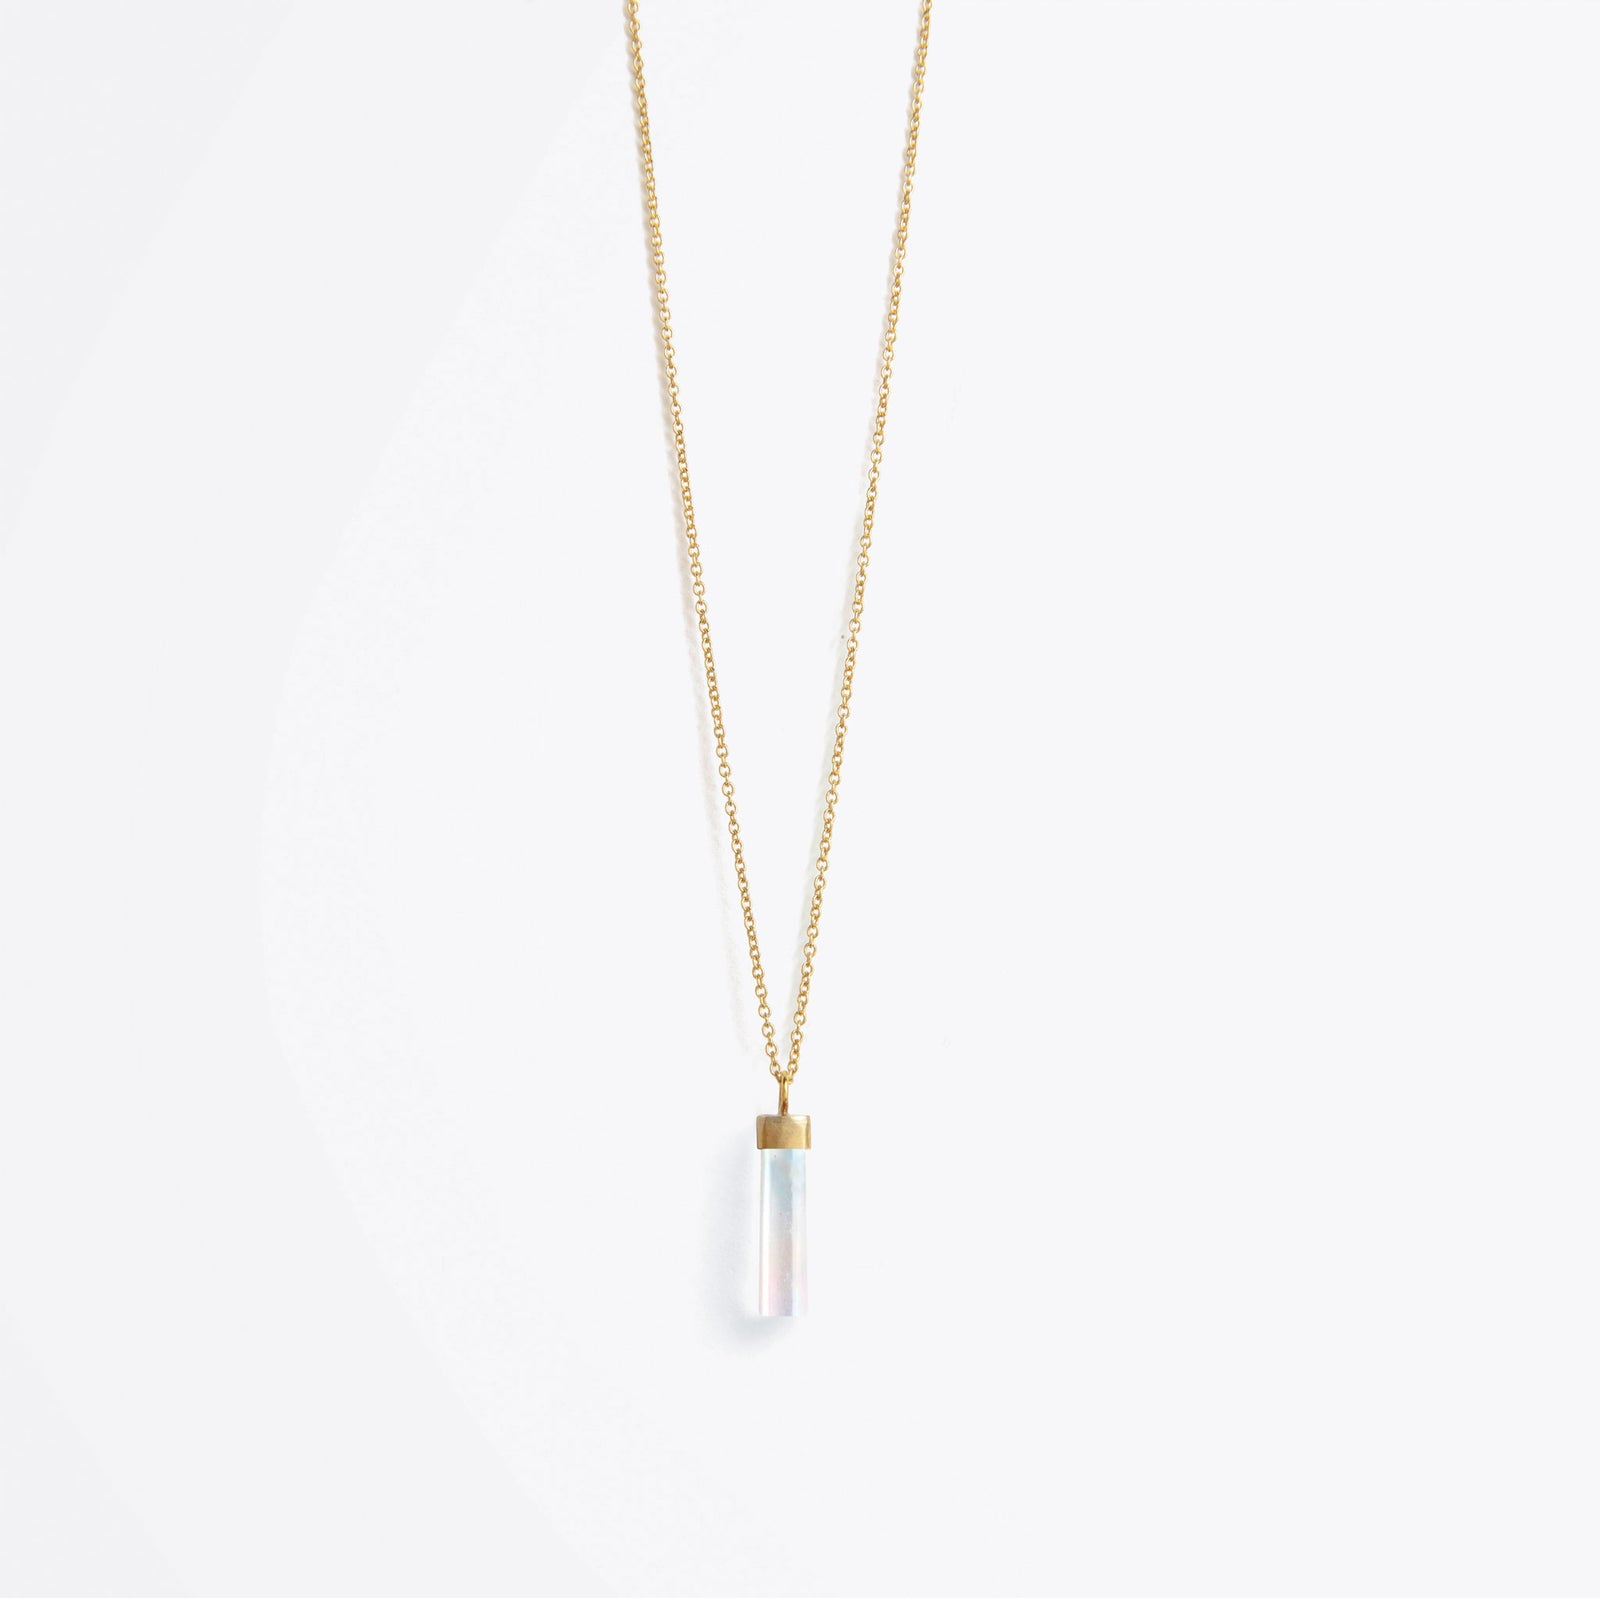 Wanderlust Life Ethically Handmade jewellery made in the UK. Minimalist gold and fine cord jewellery. talisman fine gold chain necklace, rainbow moonstone